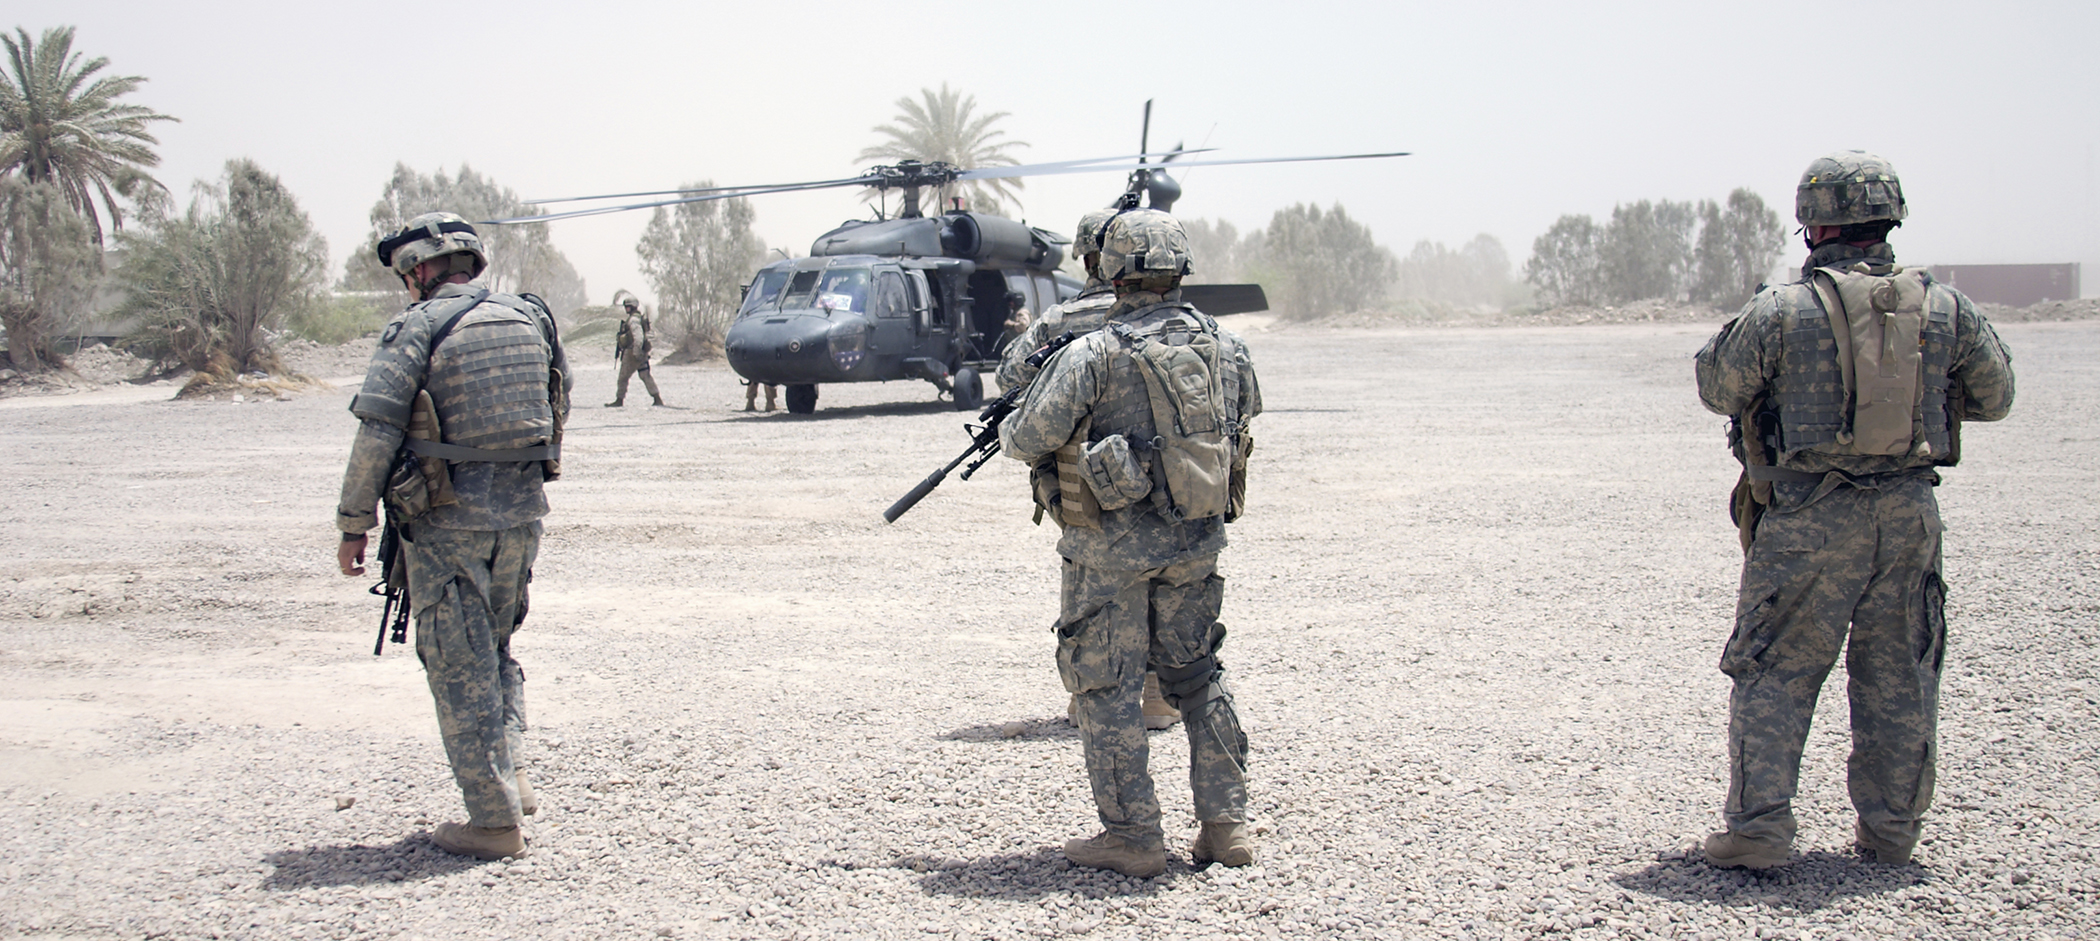 A new University of Utah study clarifies confusion regarding the connection of deployment and combat to suicide risk.